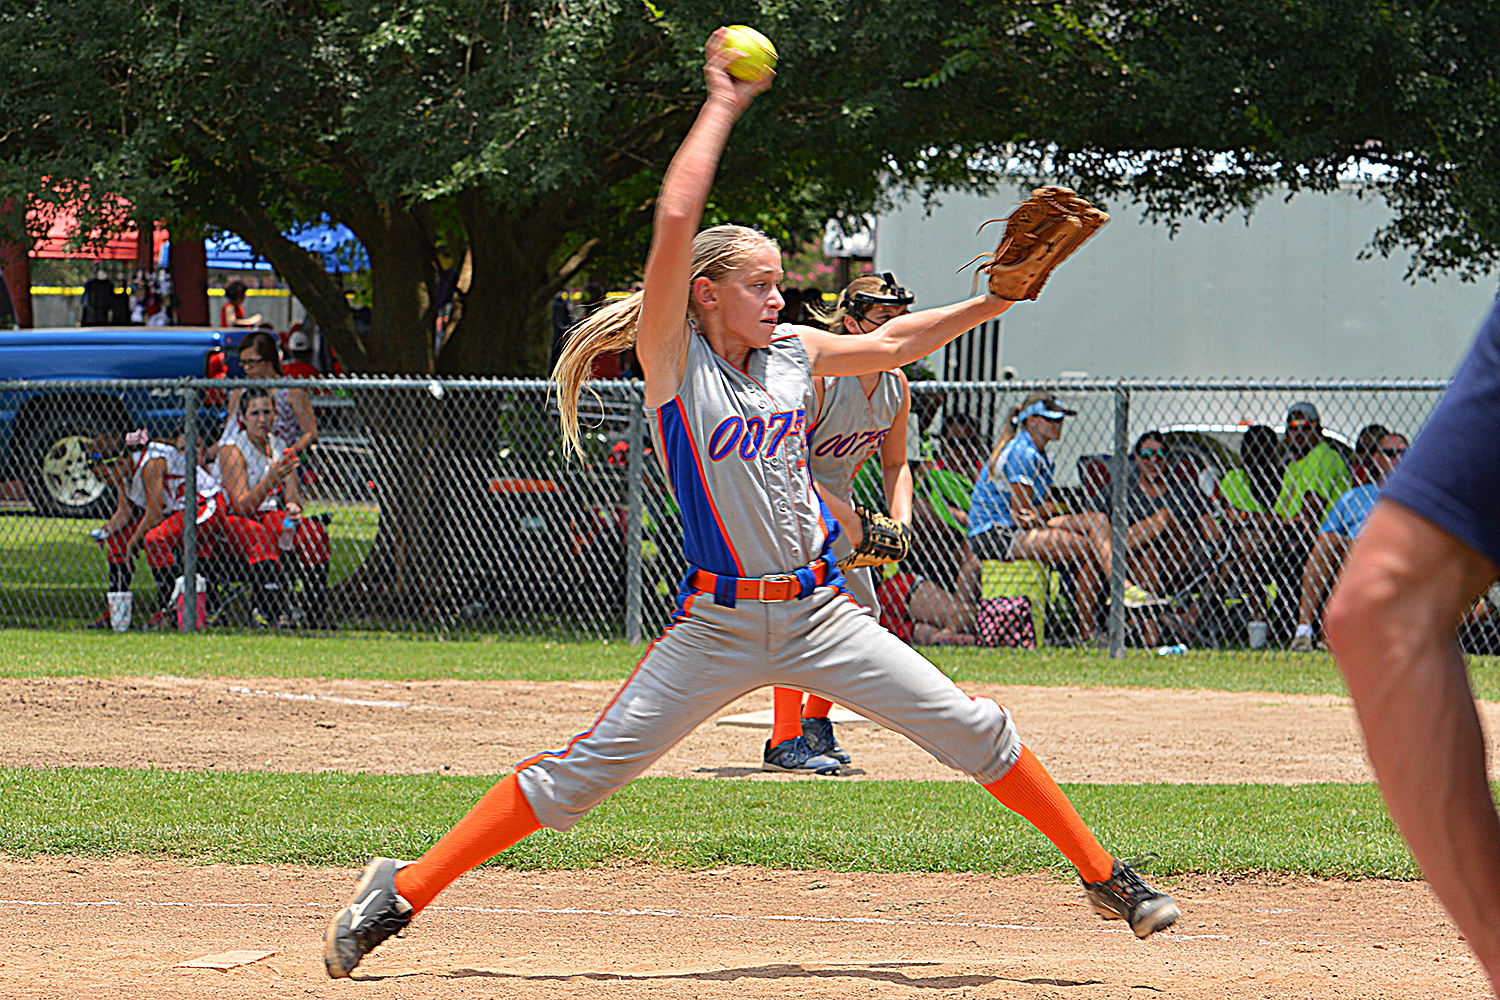 Why Fastpitch Pitching Leaves So Many In Awe... - Amanda Scarborough